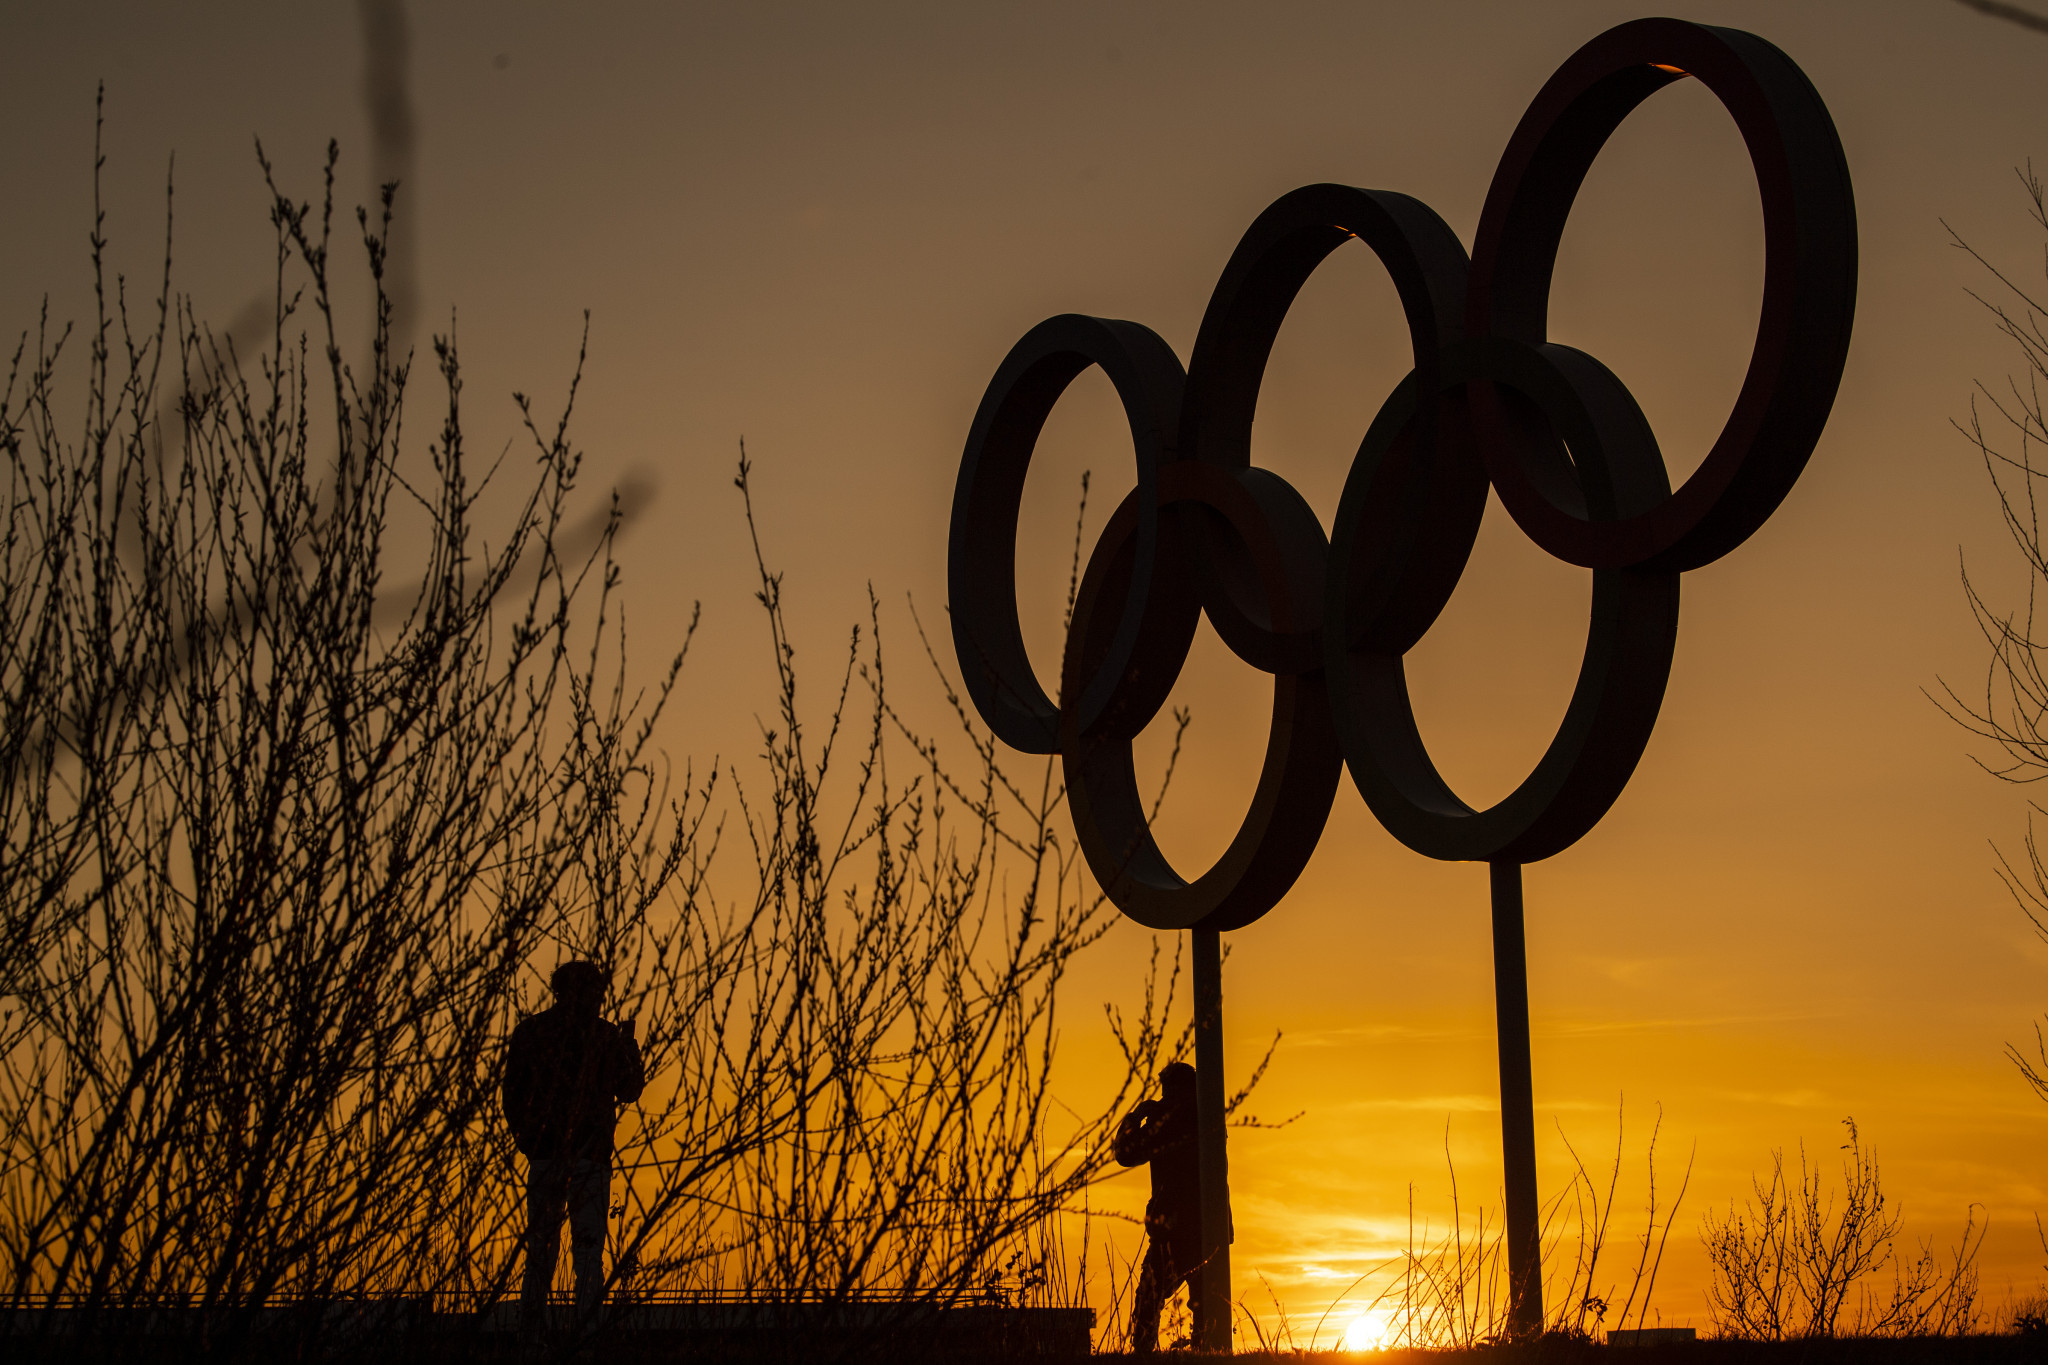 Queen Elizabeth Olympic Park in London remains open, but its playgrounds are shut ©Getty Images